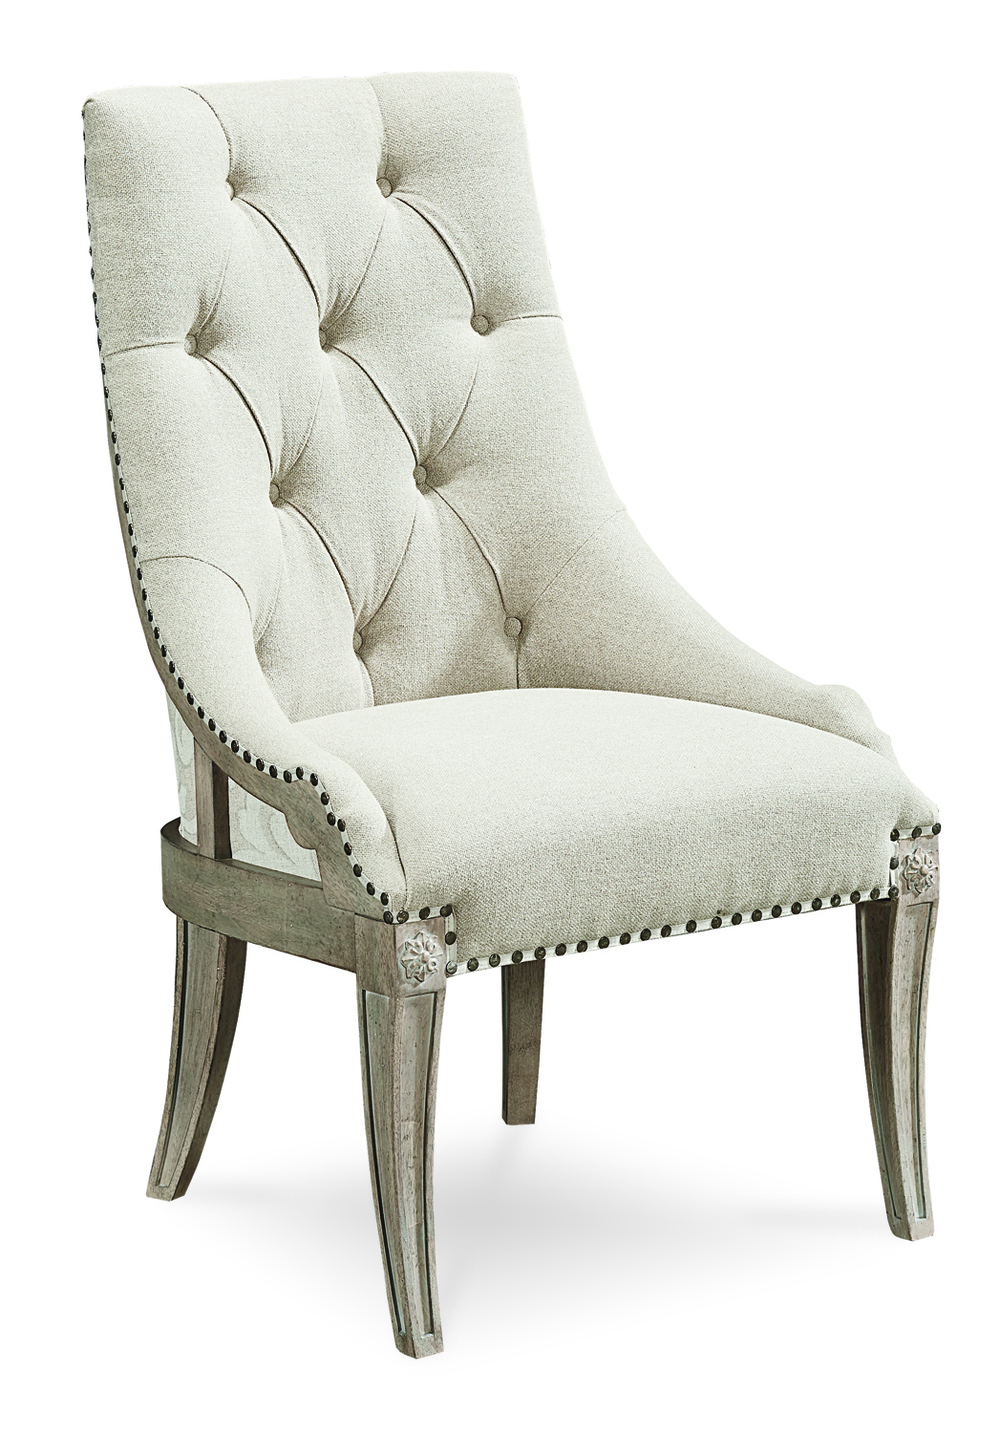 A.R.T. FURNITURE INC - Host Chair